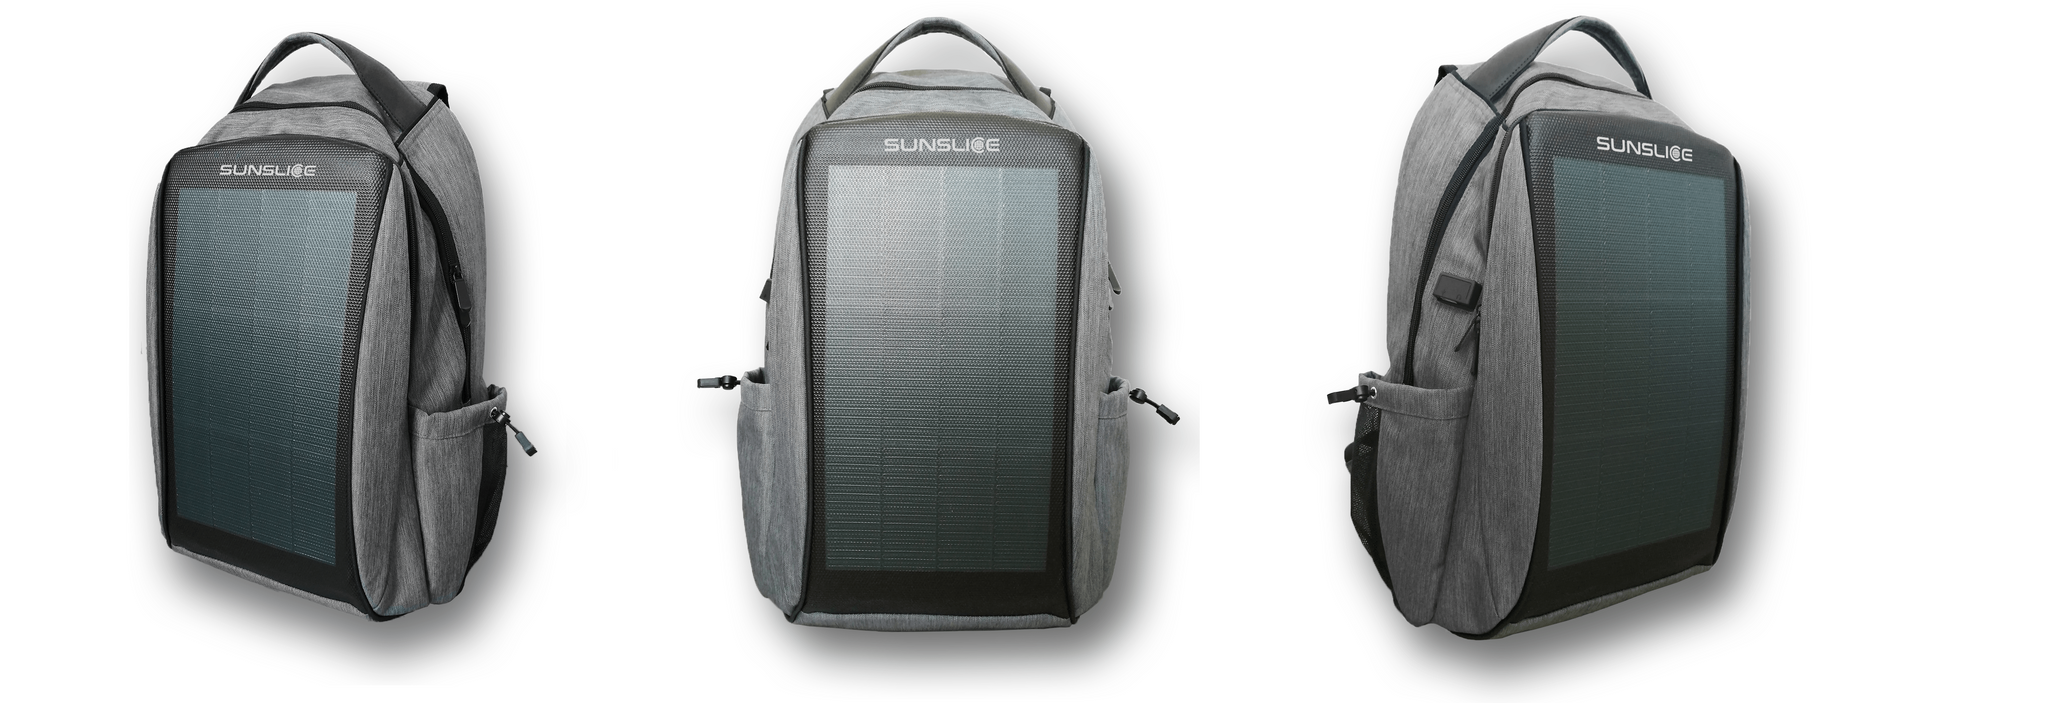 Zenith solar backpack